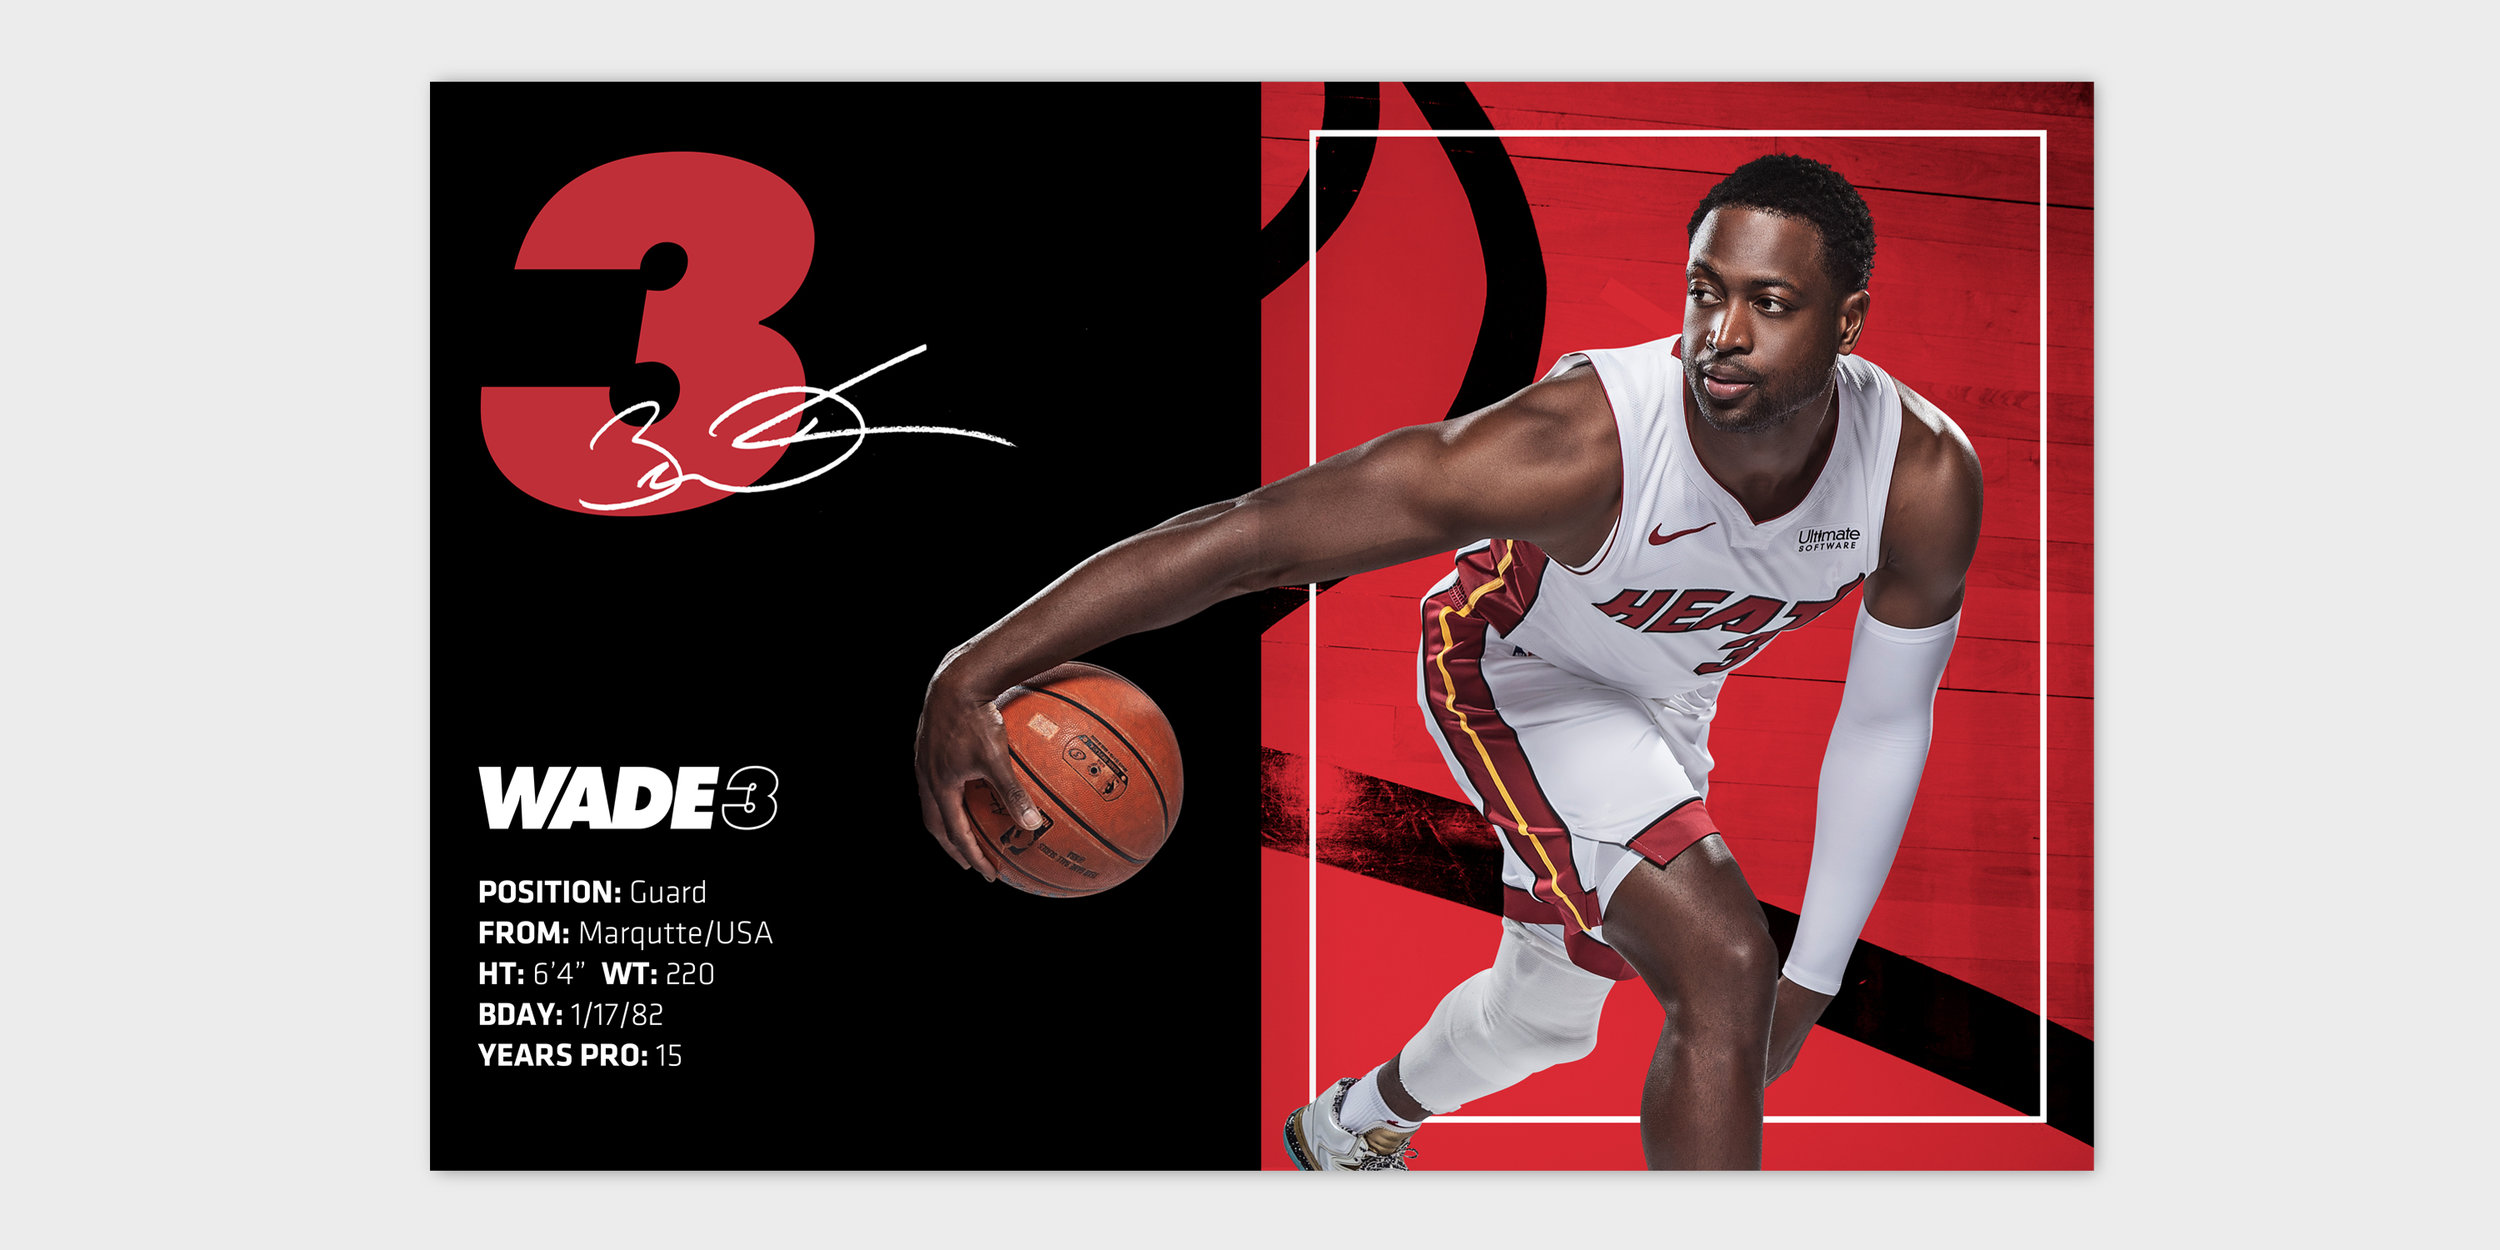 Web_Samples_MiamiHeat18-19_2.jpg